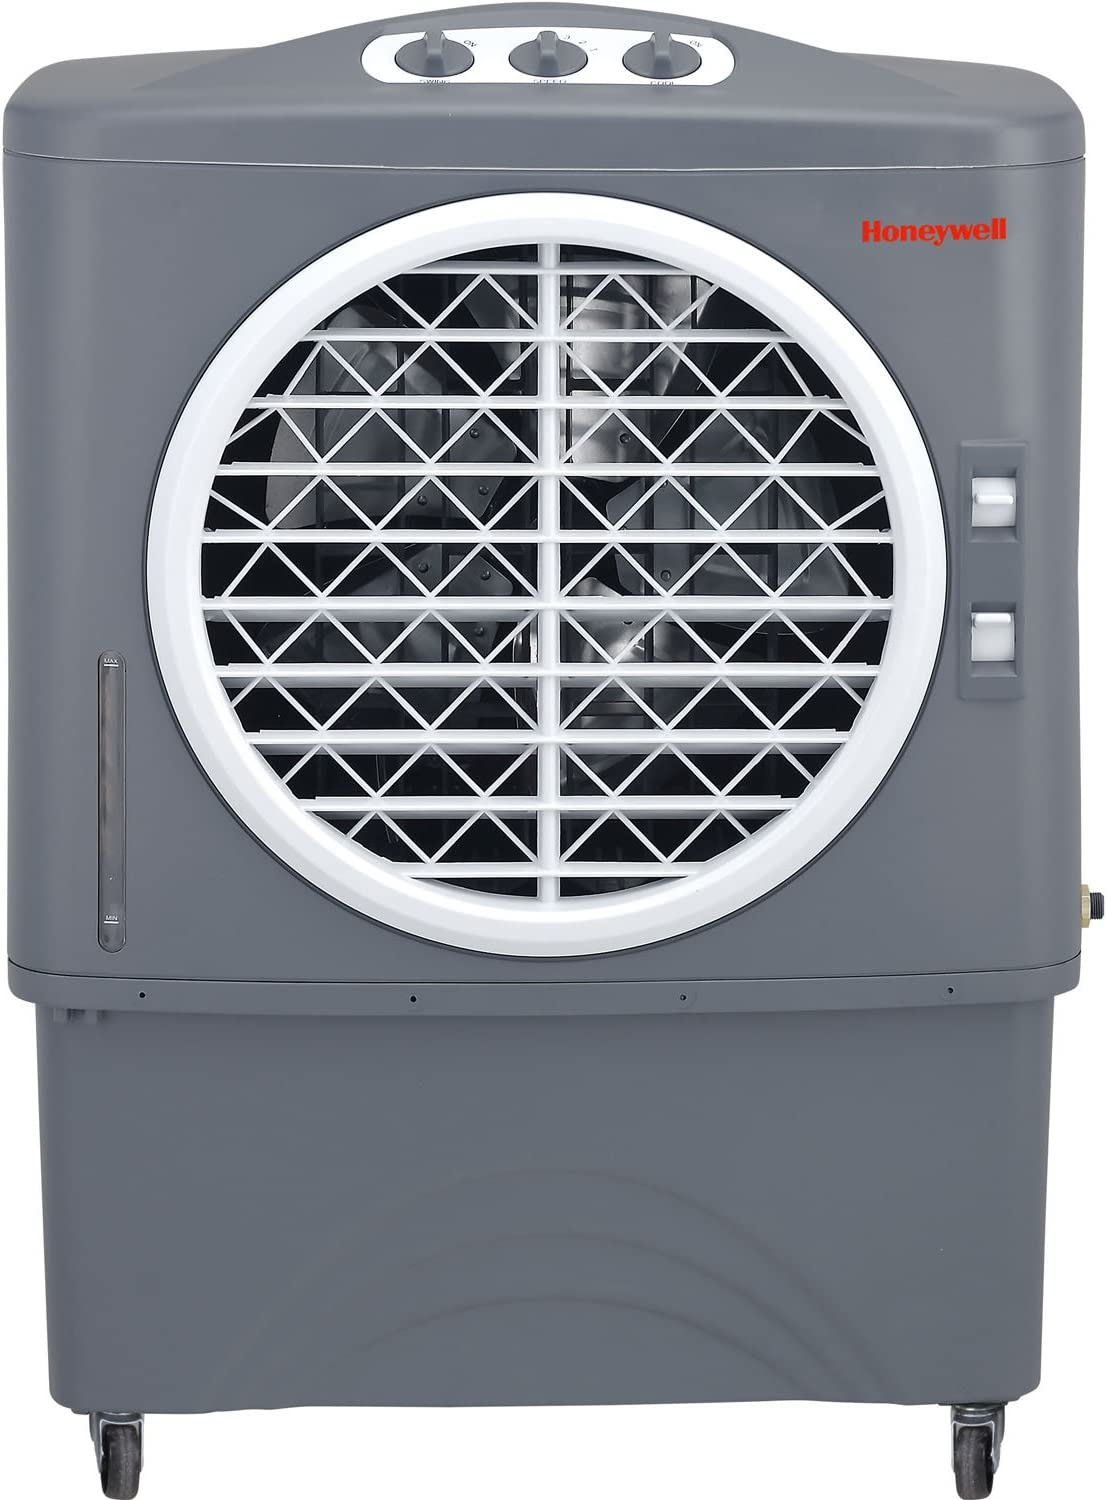 Honeywell CO48PM 1062 CFM Indoor Outdoor Evaporative Air Cooler, Grey